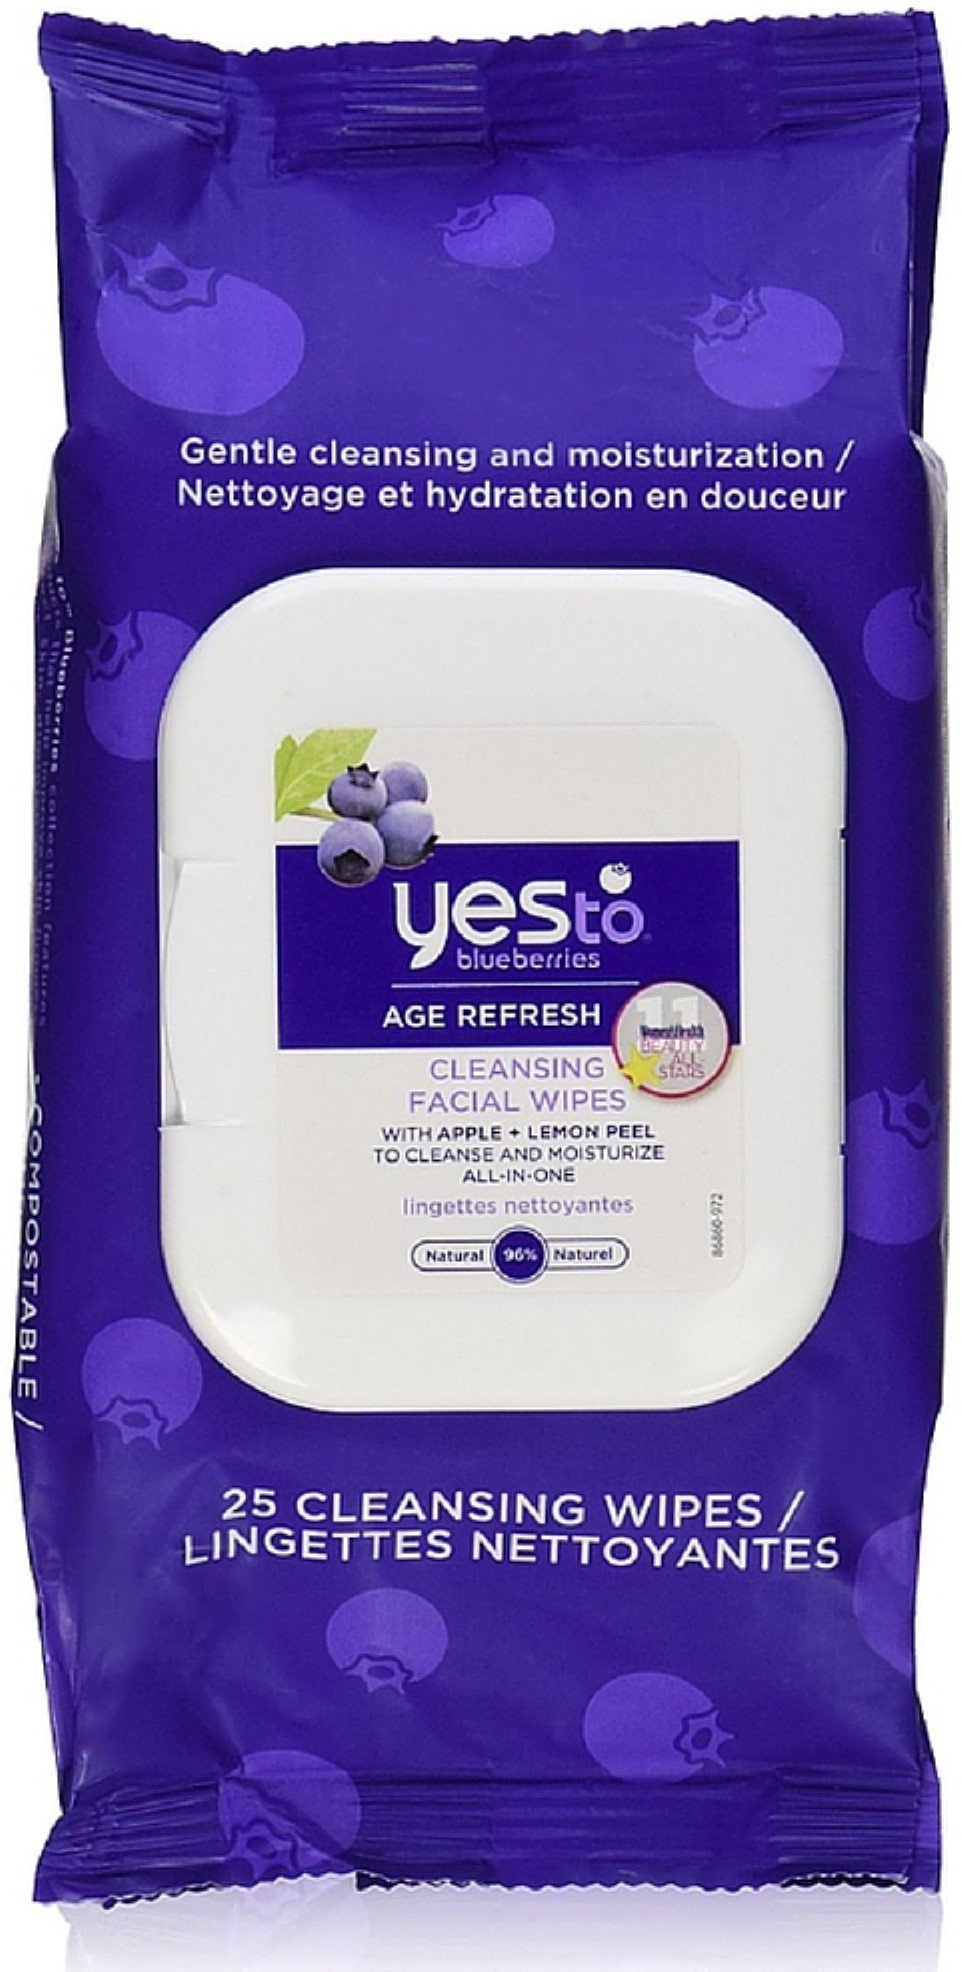 Yes to Blueberries Age Refresh Cleansing Facial Towelettes 25 ea (Pack of 12)